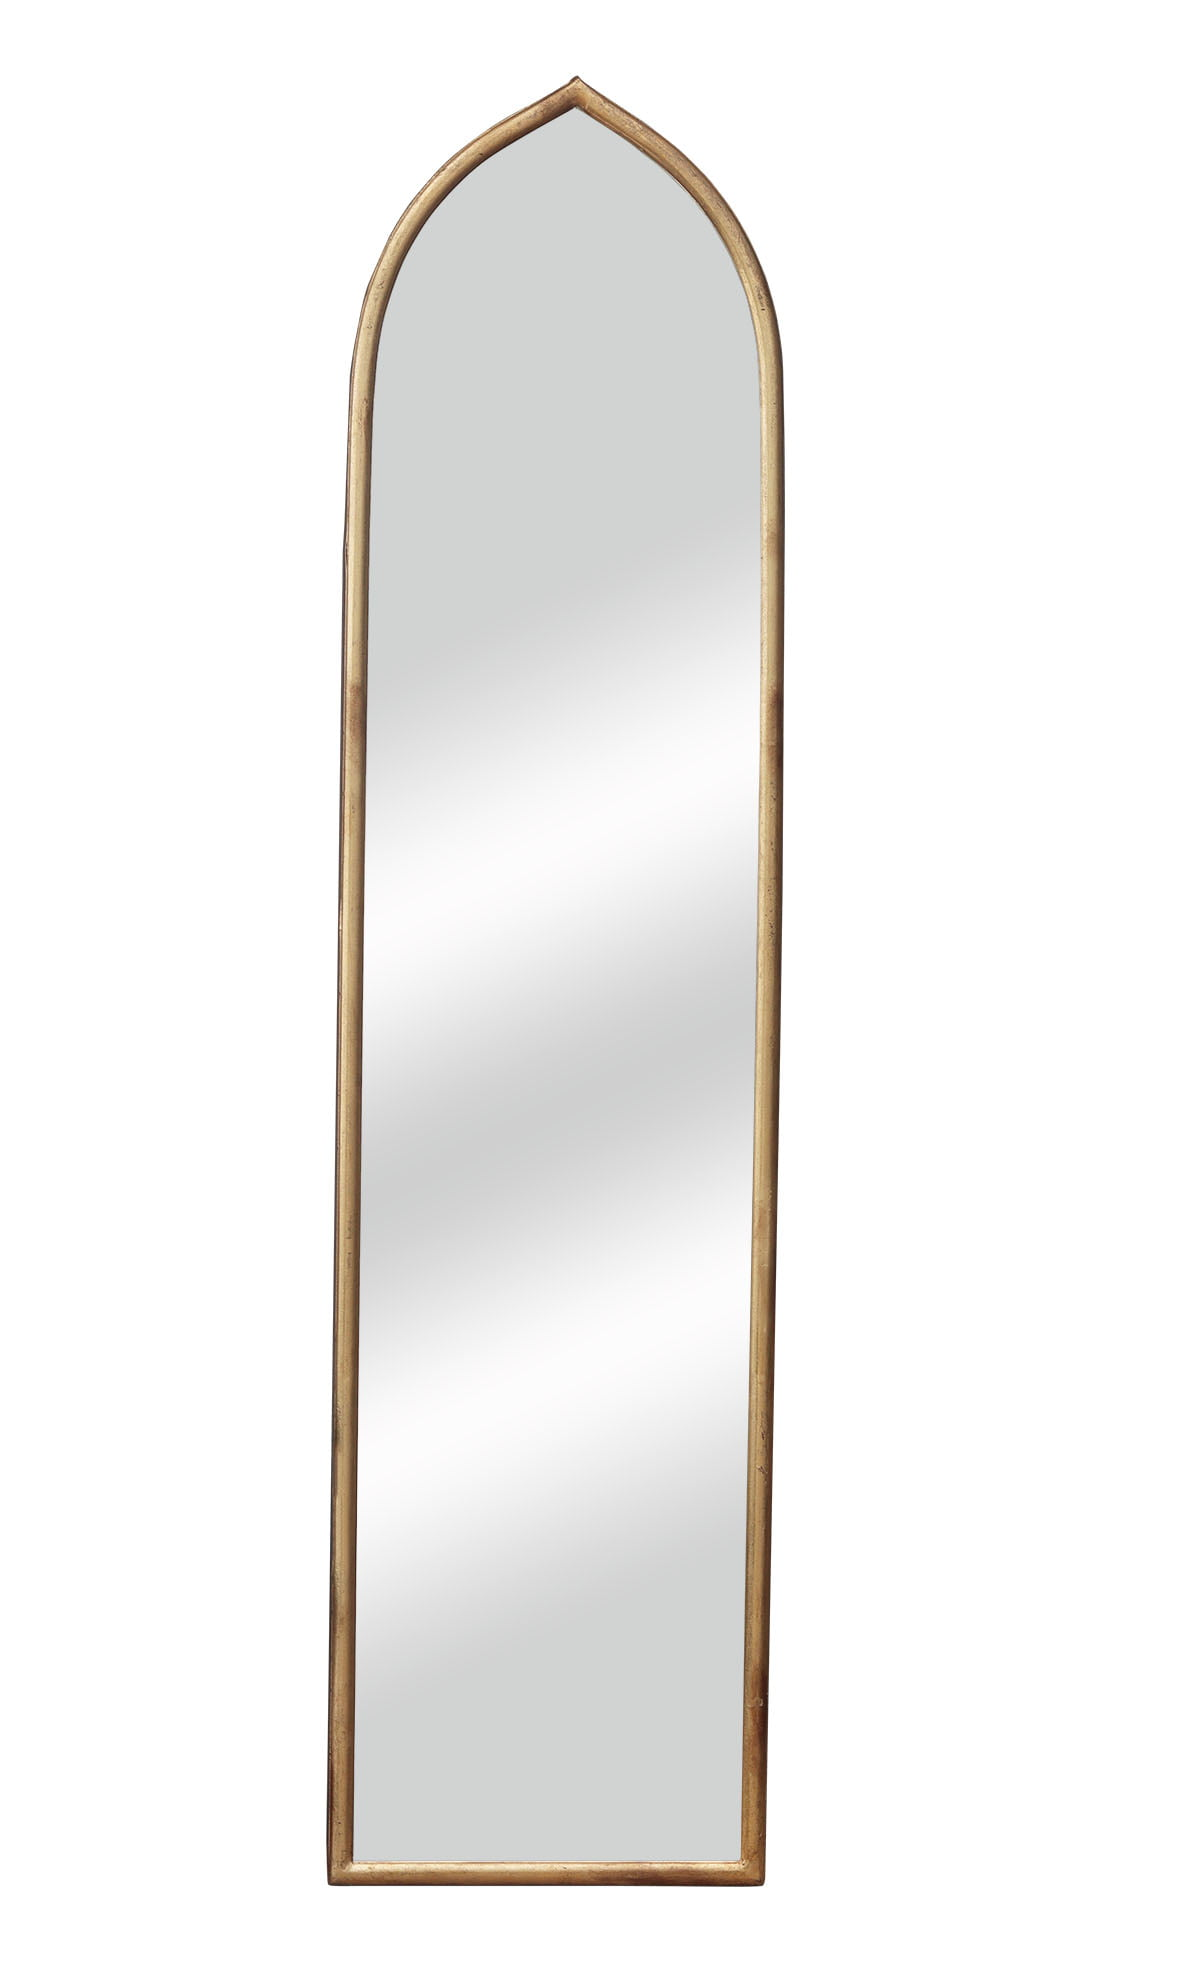 Vintage Full Length Wall Mirror With Arched Metal Frame Simple Full Body Mirror Dressing Mirror Make Up Mirror For Bathroom Bedroom Living Room Dining Room Entry Antique Gold 12 1 4 X 50 Inch